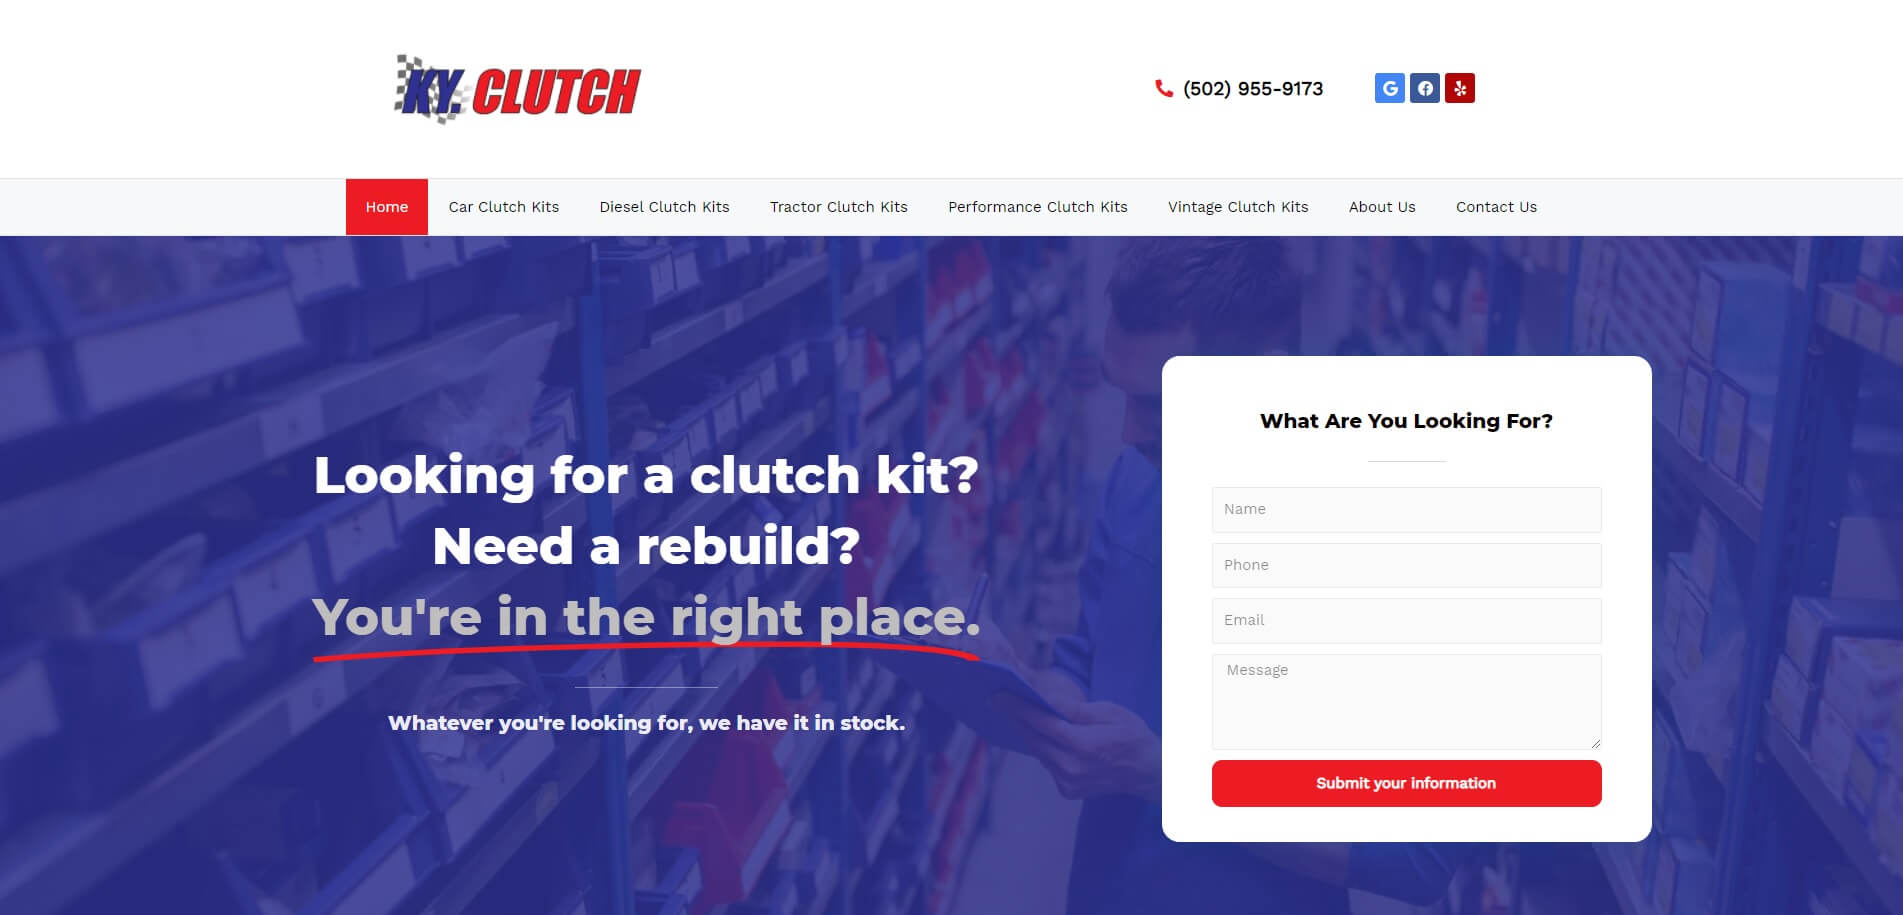 kyclutch.com Homepage